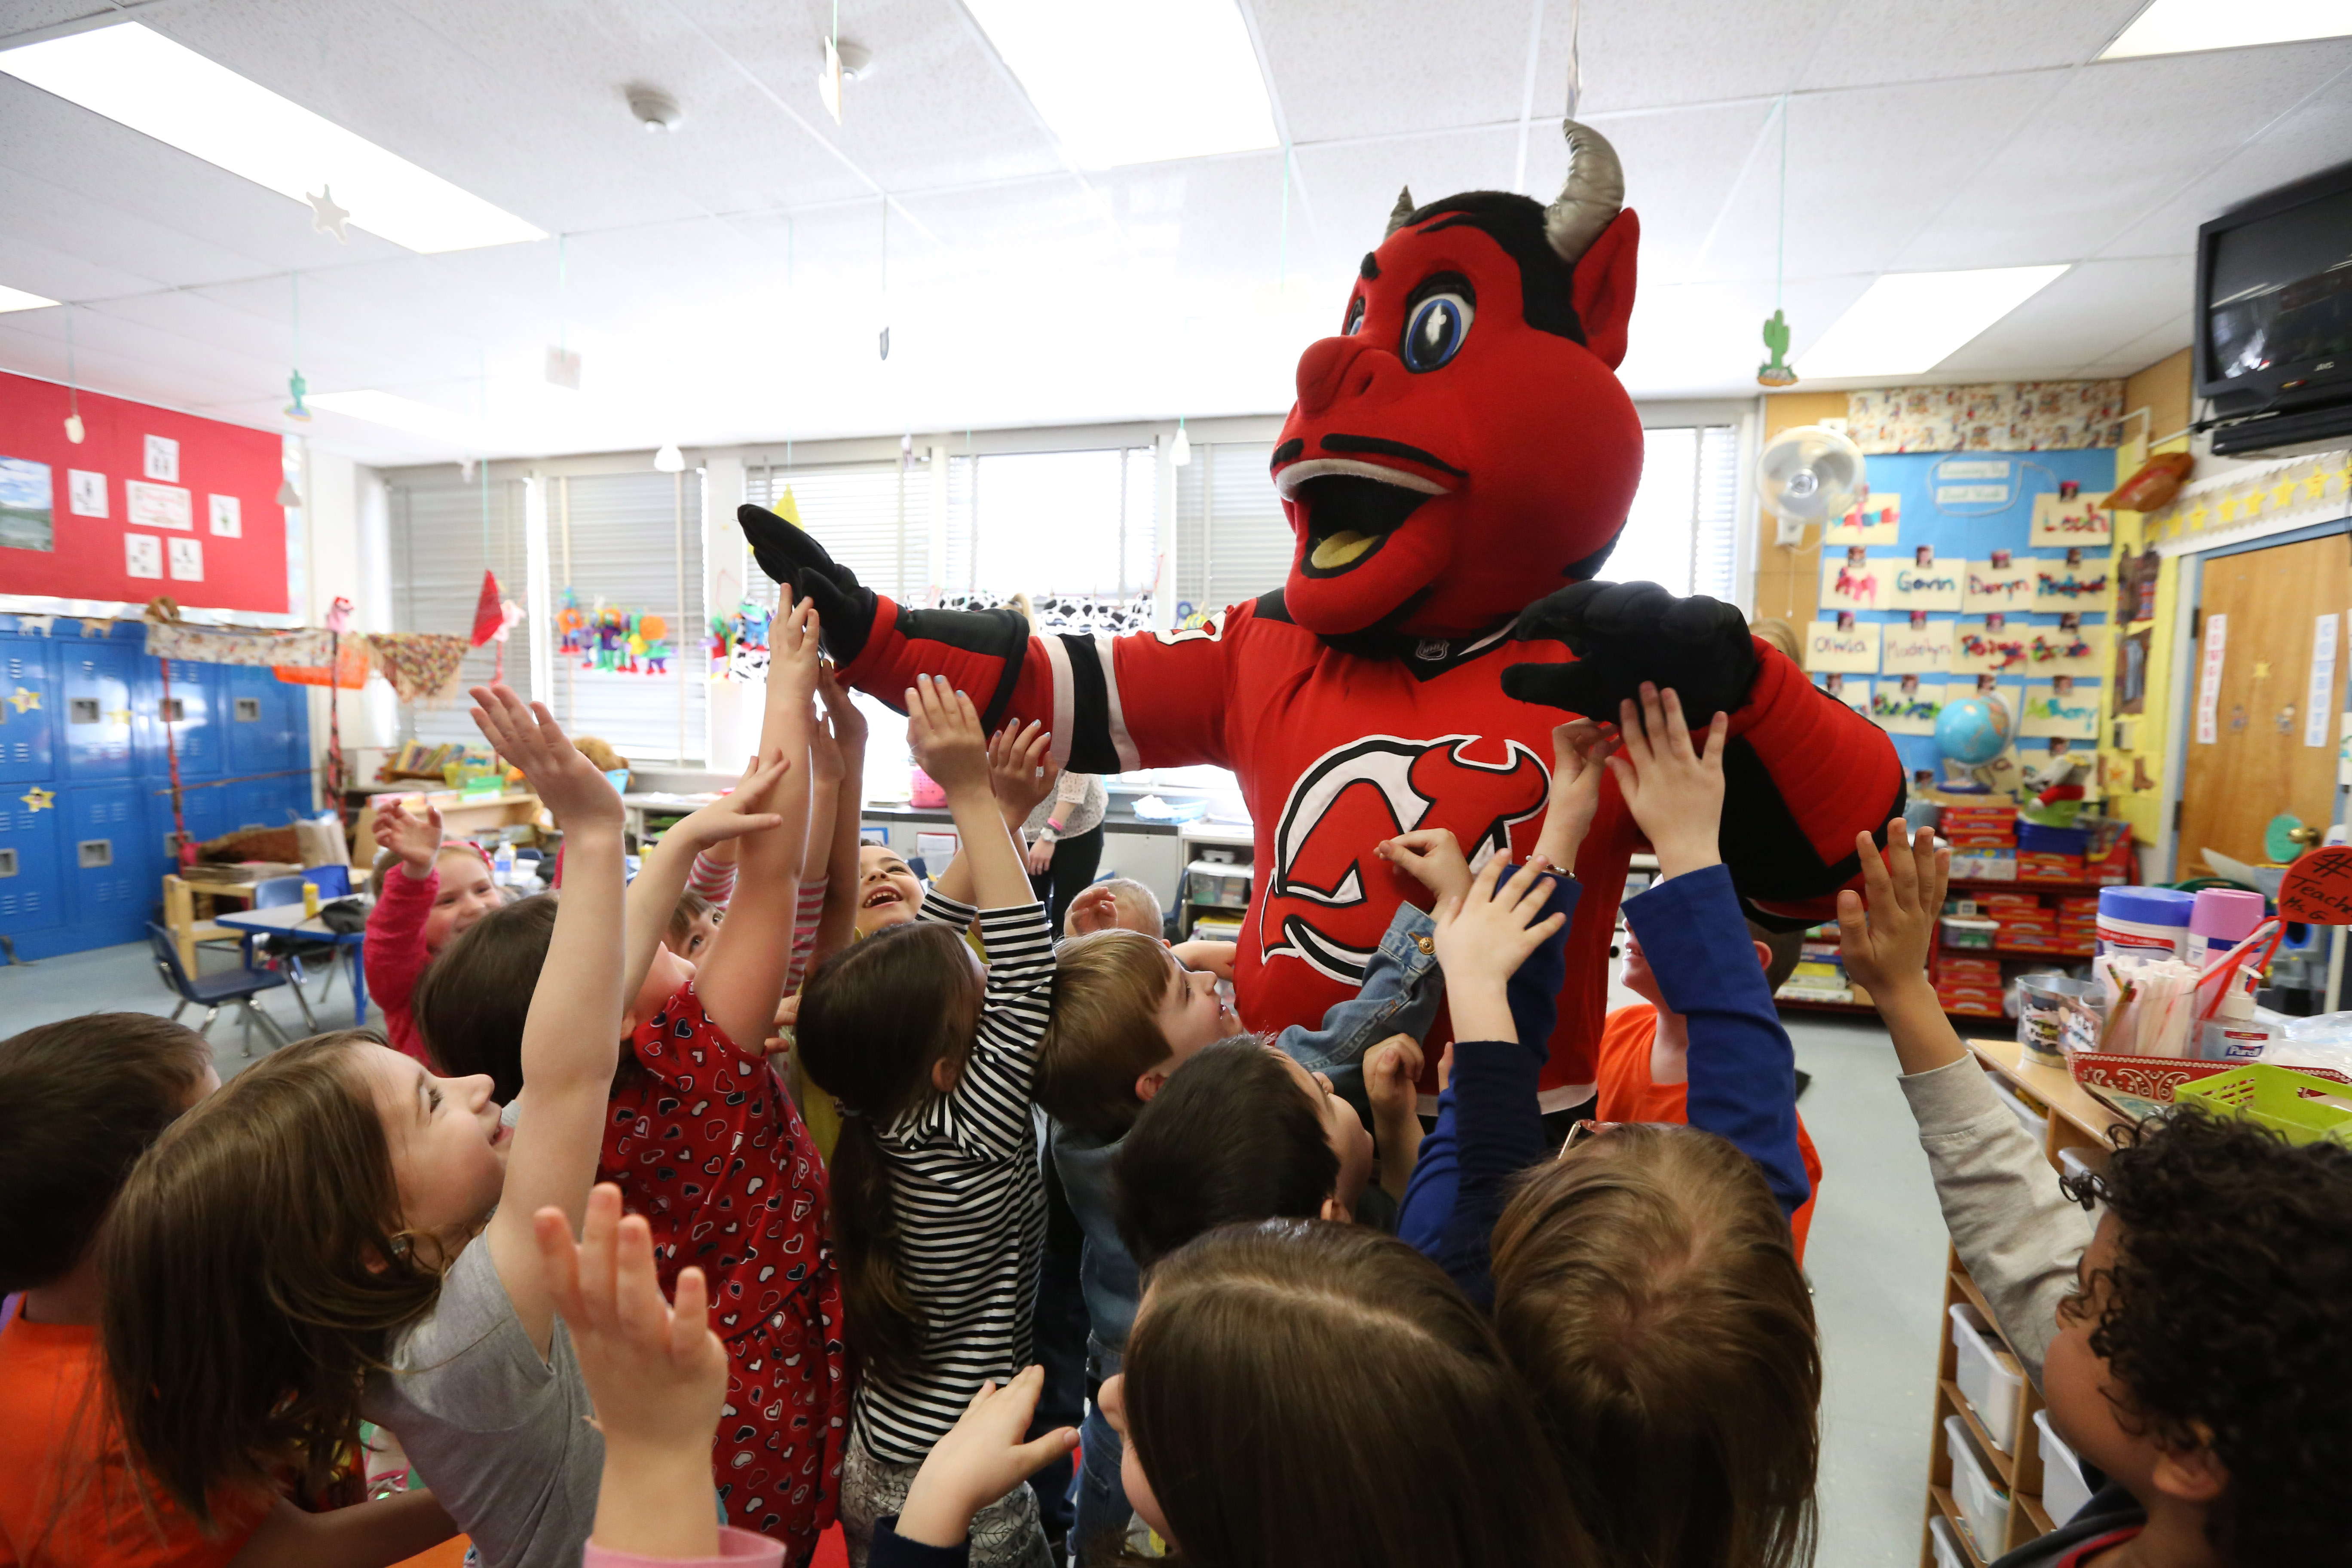 Worksheet Reading Programs For Elementary new jersey devils launch reading program for elementary school the nj mascott gives students high fives during his visit to their credits sean conklin